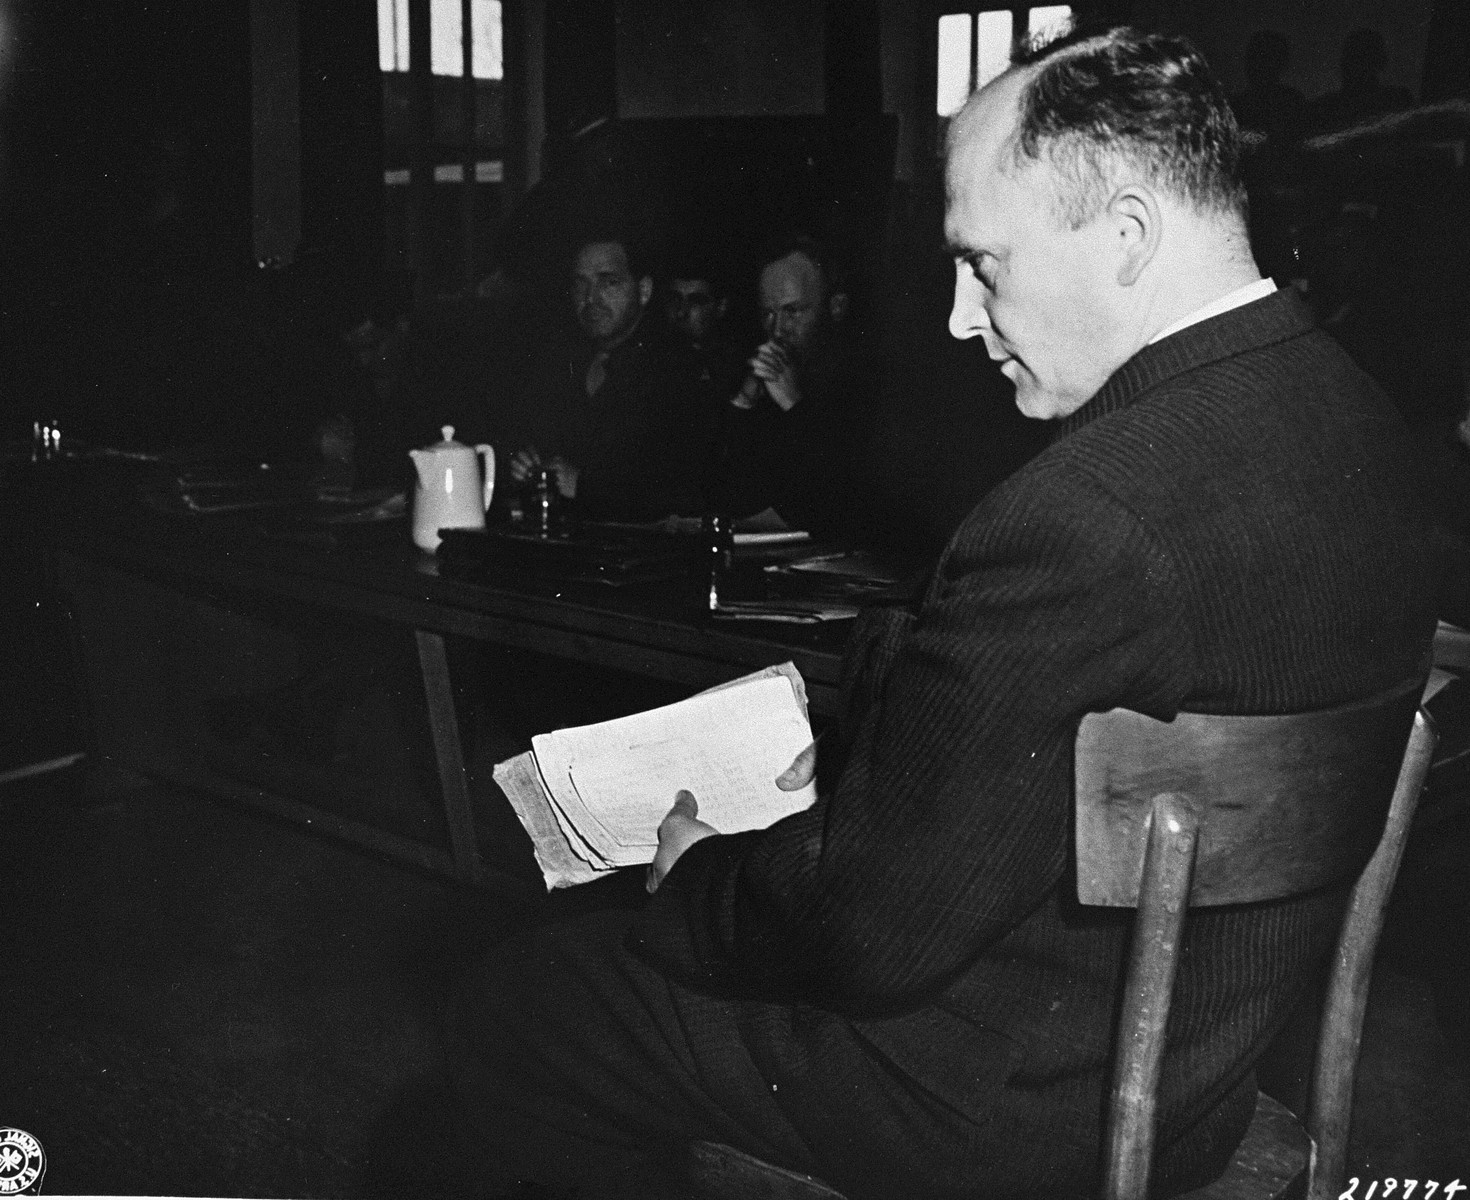 Friedrich Hoffman, a Czech priest, testifies at the trial of former camp personnel and prisoners from Dachau.  In his hand he holds a packet of records that show that 324 priests died at the camp after being exposed to malaria during Nazi medical experiments.